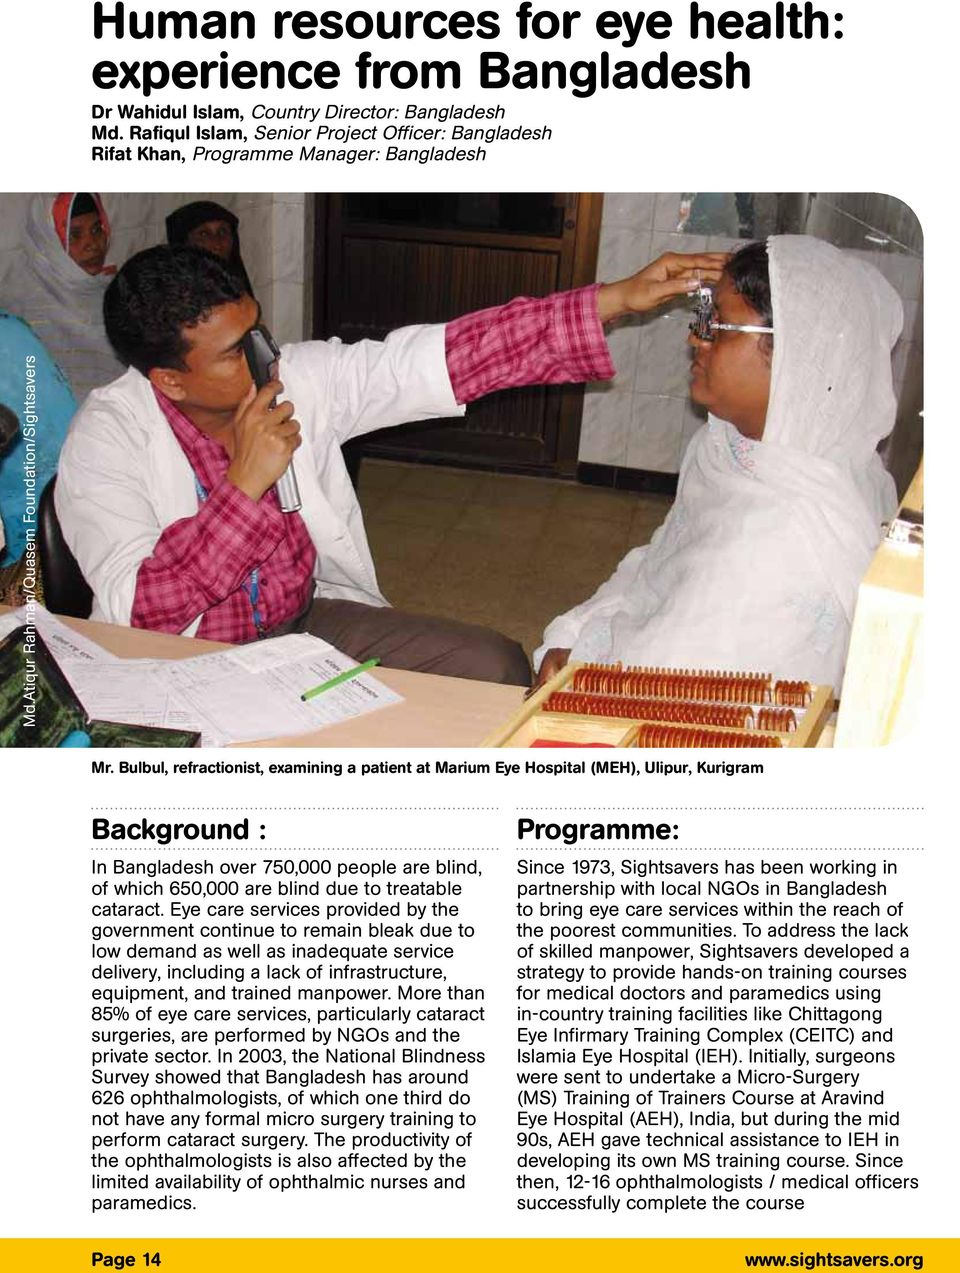 Bulbul, refractionist, examining a patient at Marium Eye Hospital (MEH), Ulipur, Kurigram Background : In Bangladesh oer 750,000 people are blind, of which 650,000 are blind due to treatable cataract.